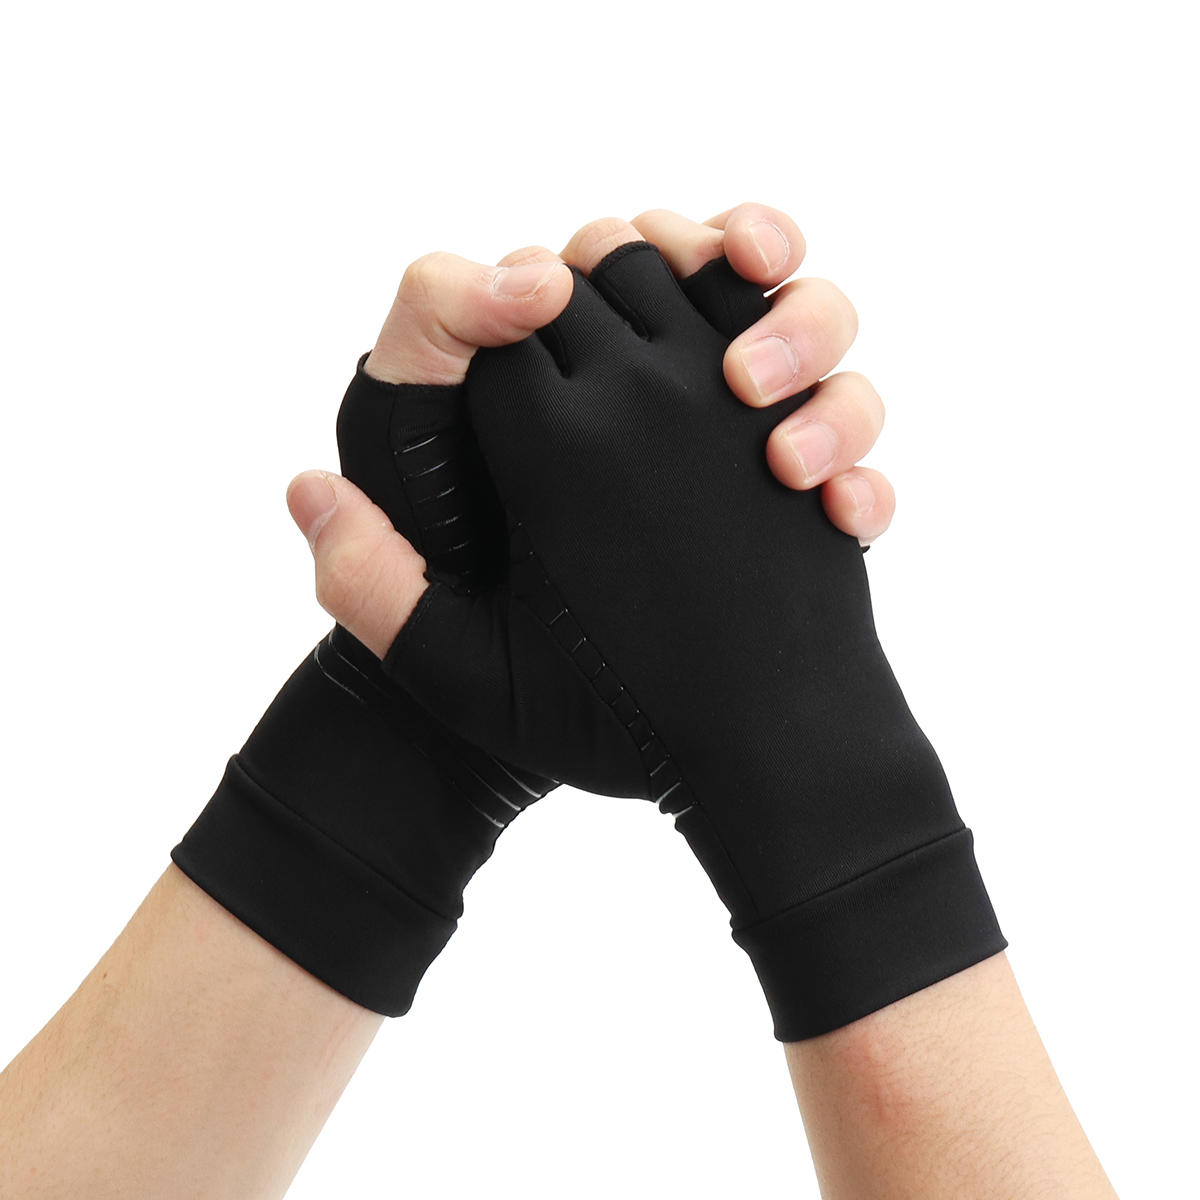 1 Pair Half Finger Gloves Anti Arthritis Copper Pain Relief Glove Hand Protection Training Protector